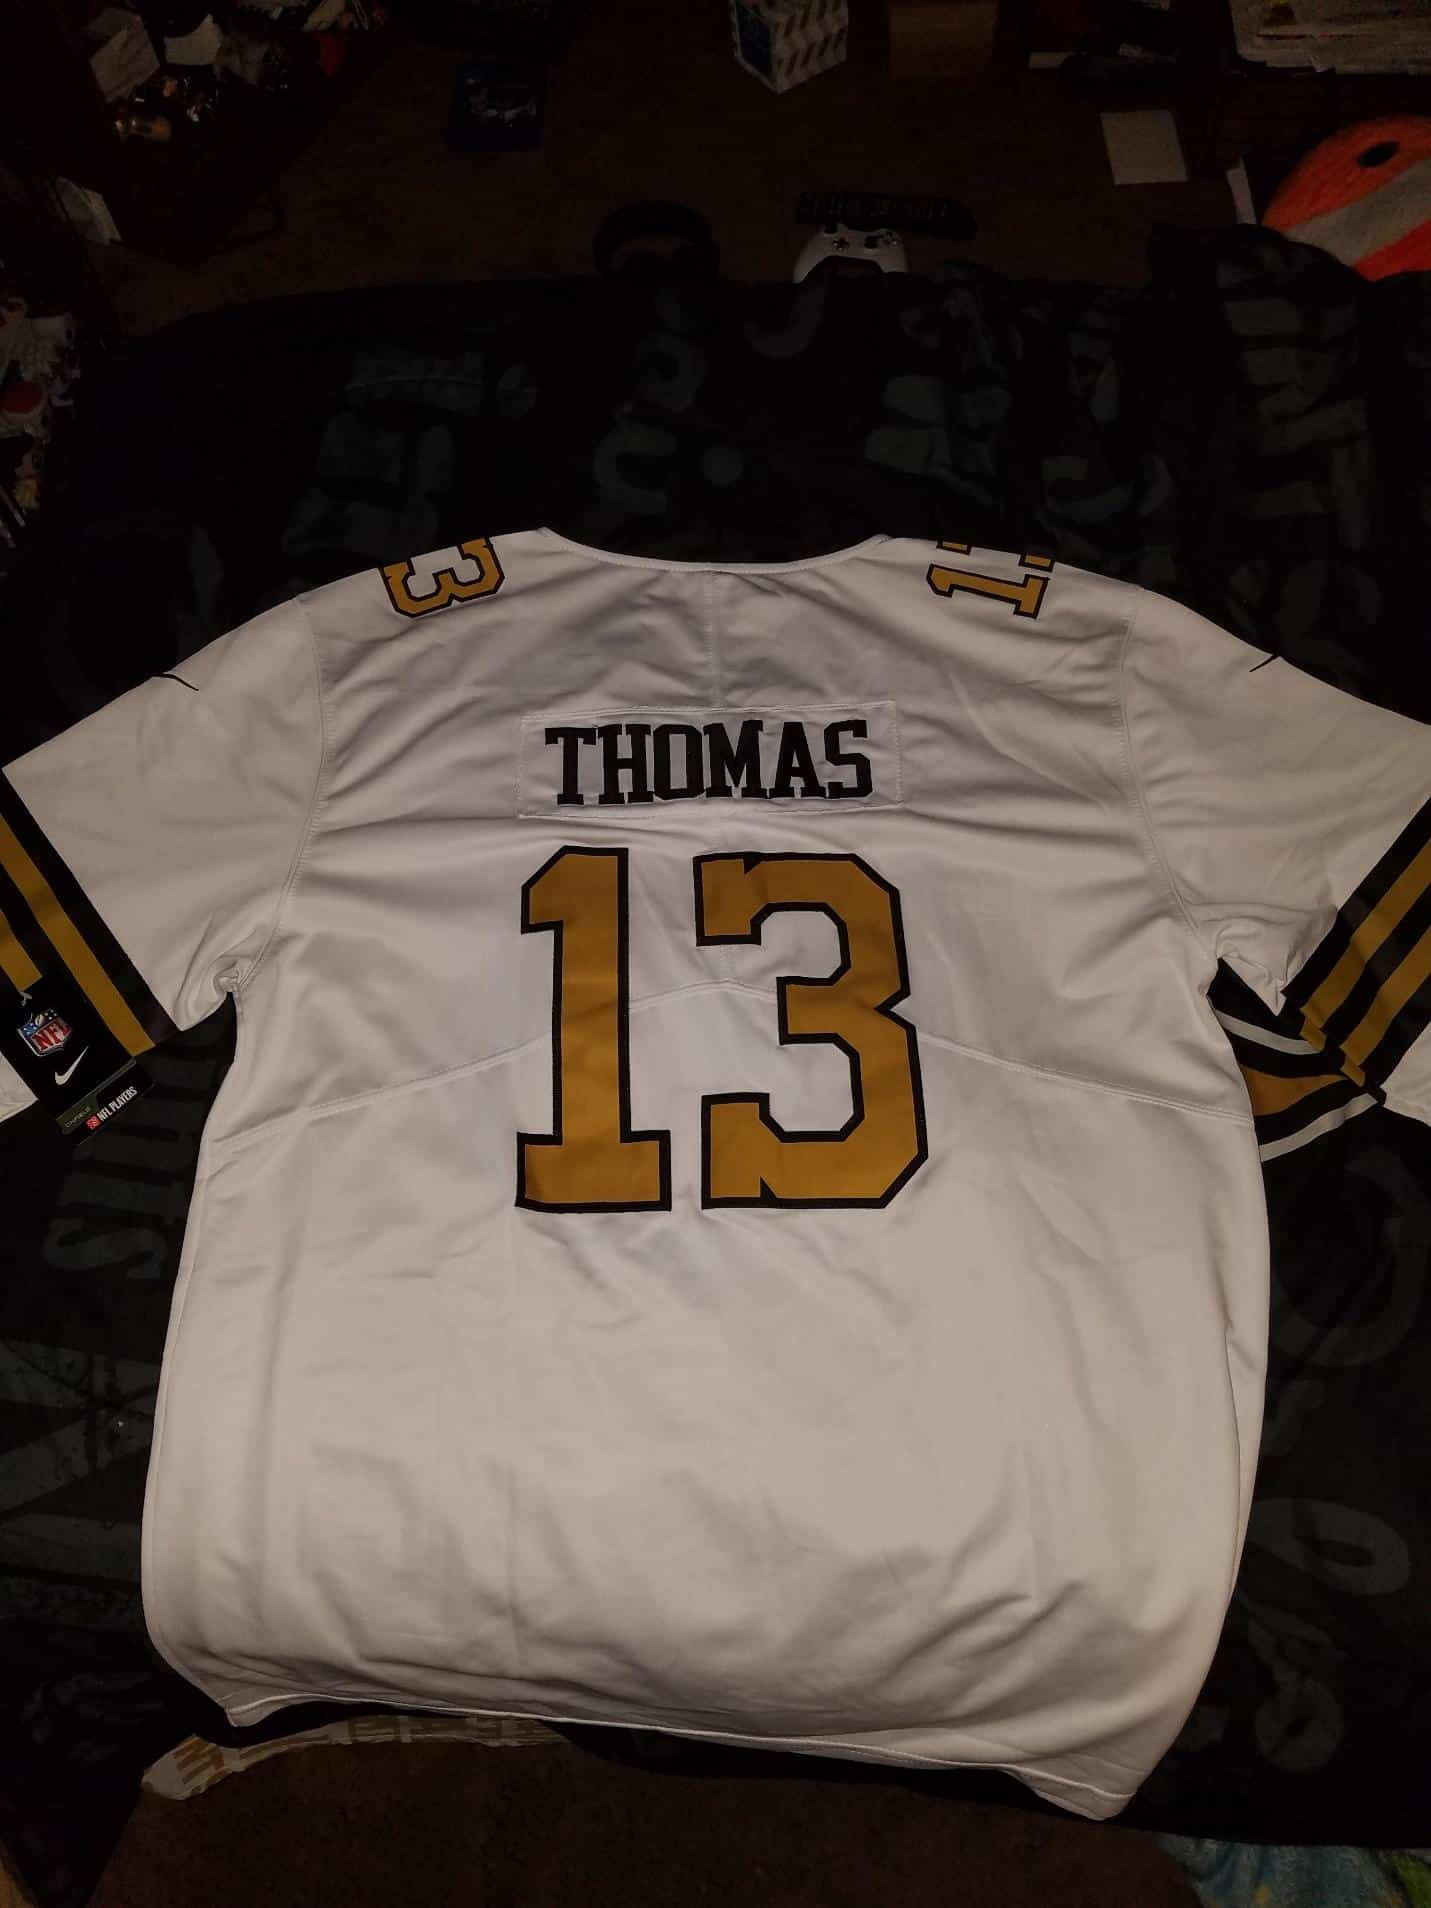 Michael Thomas Color Rush Jersey is best replica Nba Jerseys of 2020 - Best Reviews Guide